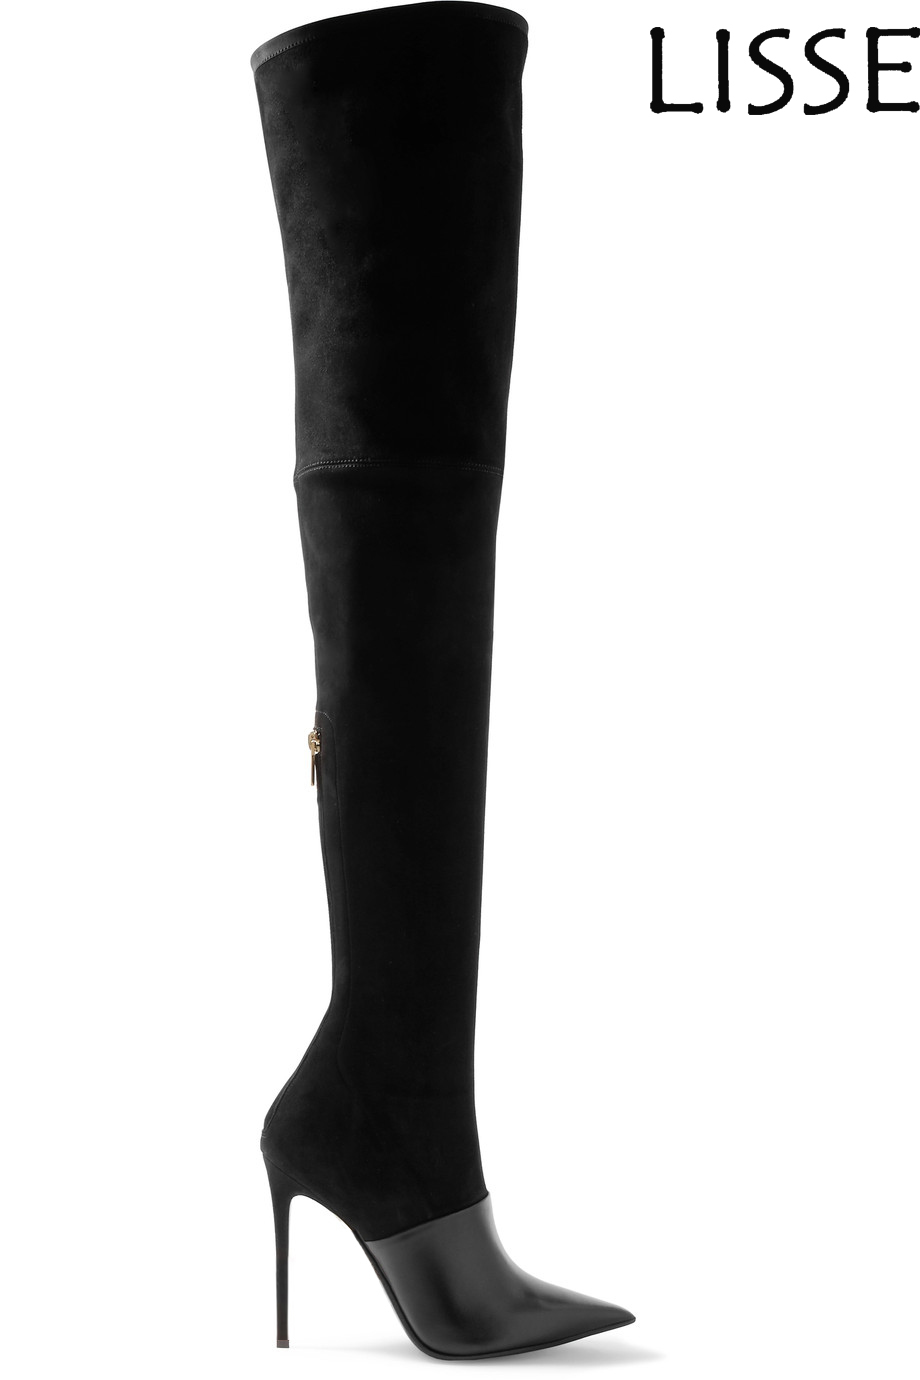 Women Pointed Toe Thigh High Over the Knee Boots Faux Suede Stretch Stiletto Handmade Wholesale Big Size 13 14 15